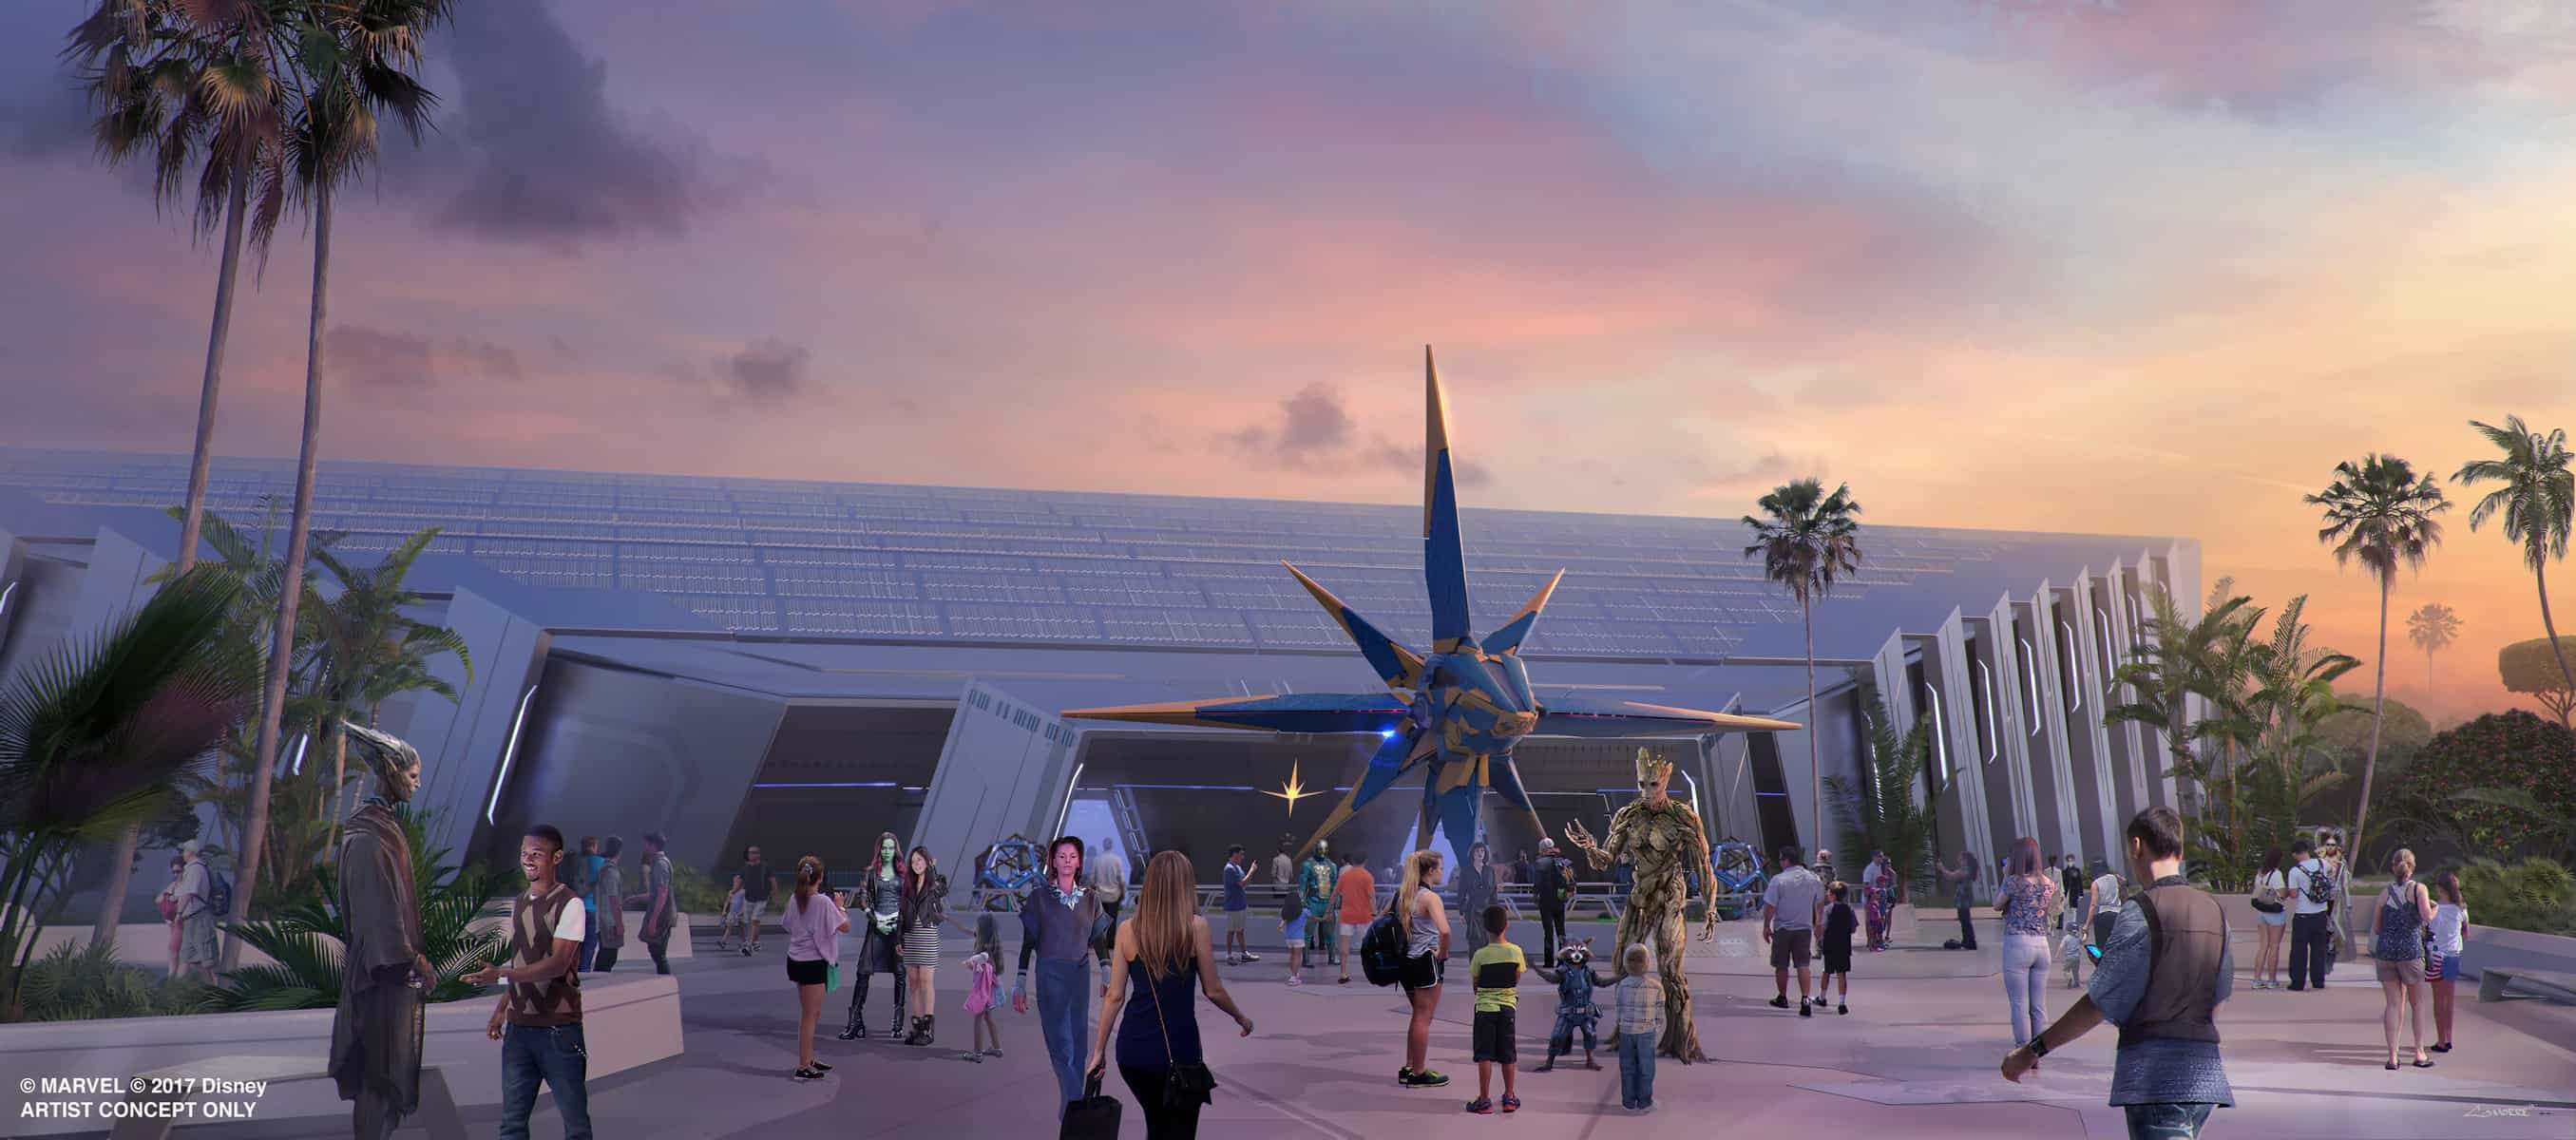 Epcot updates coming to Disney World by 2021